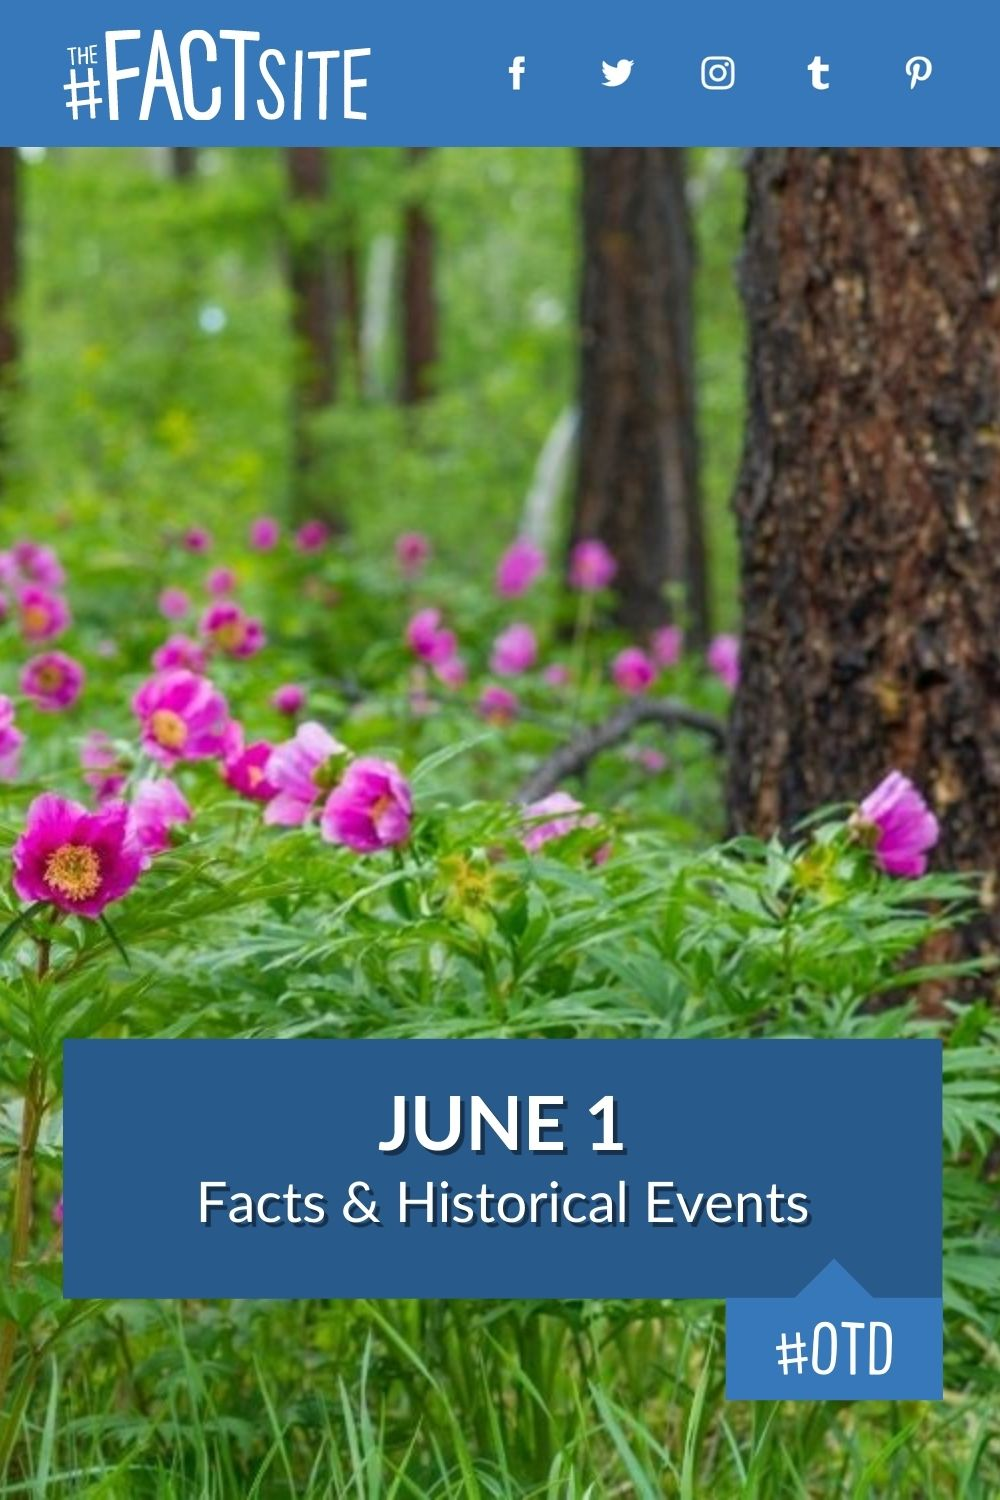 Facts & Historic Events That Happened on June 1